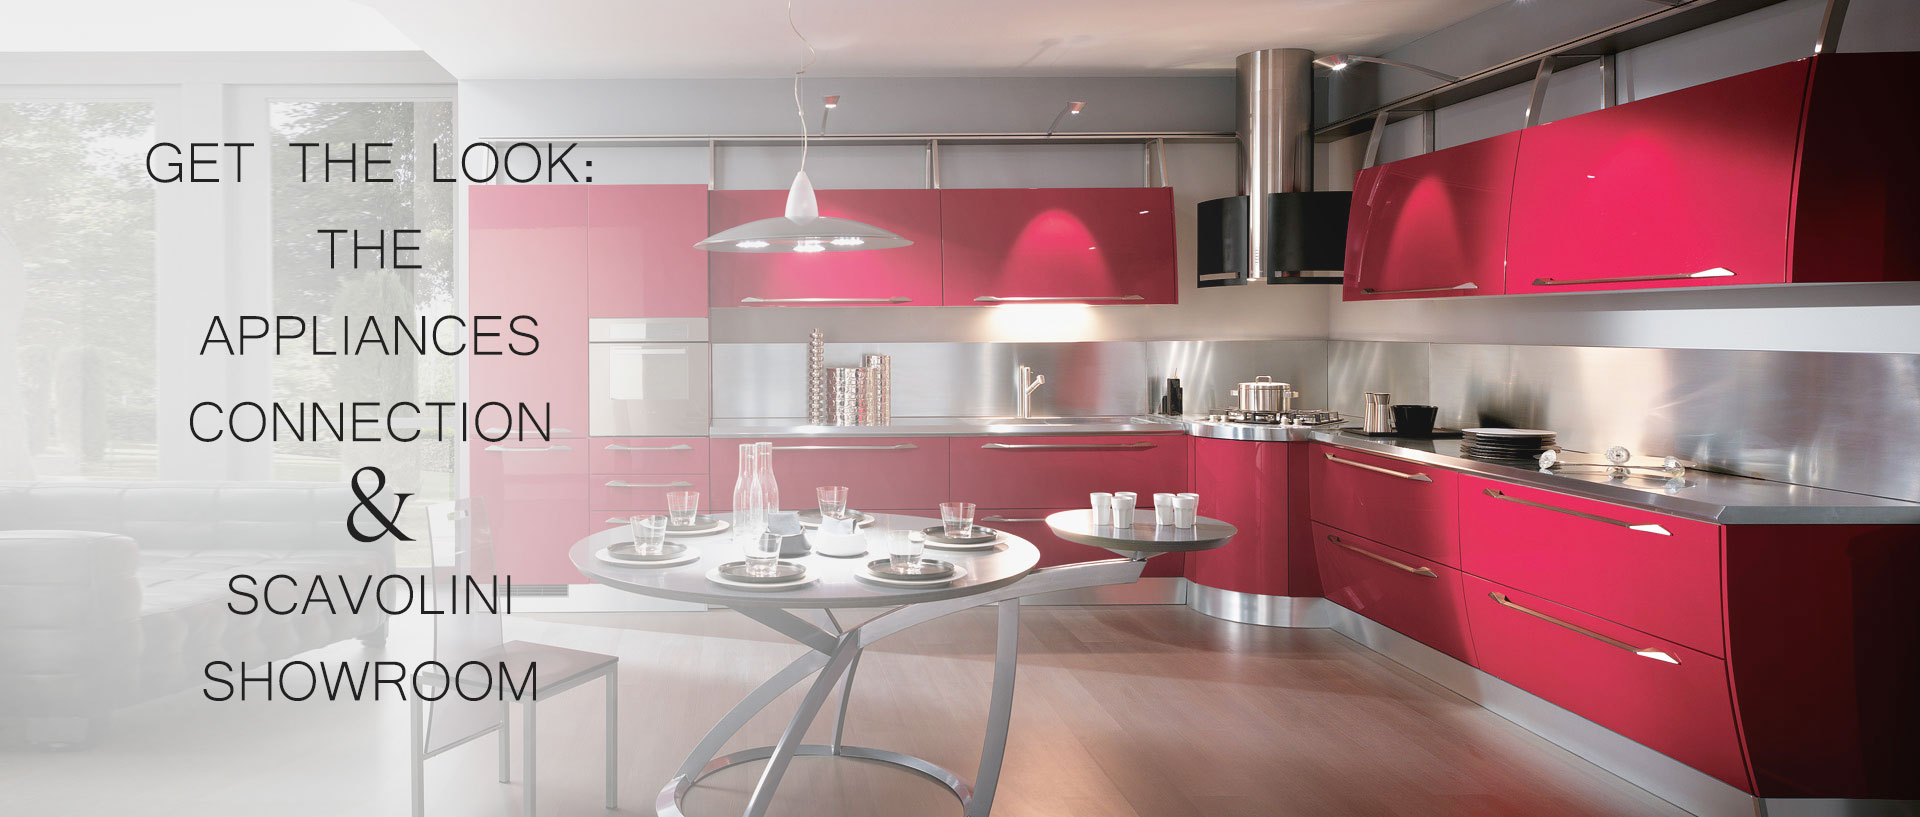 Scavolini Designs in Our Showroom   Appliances Connection